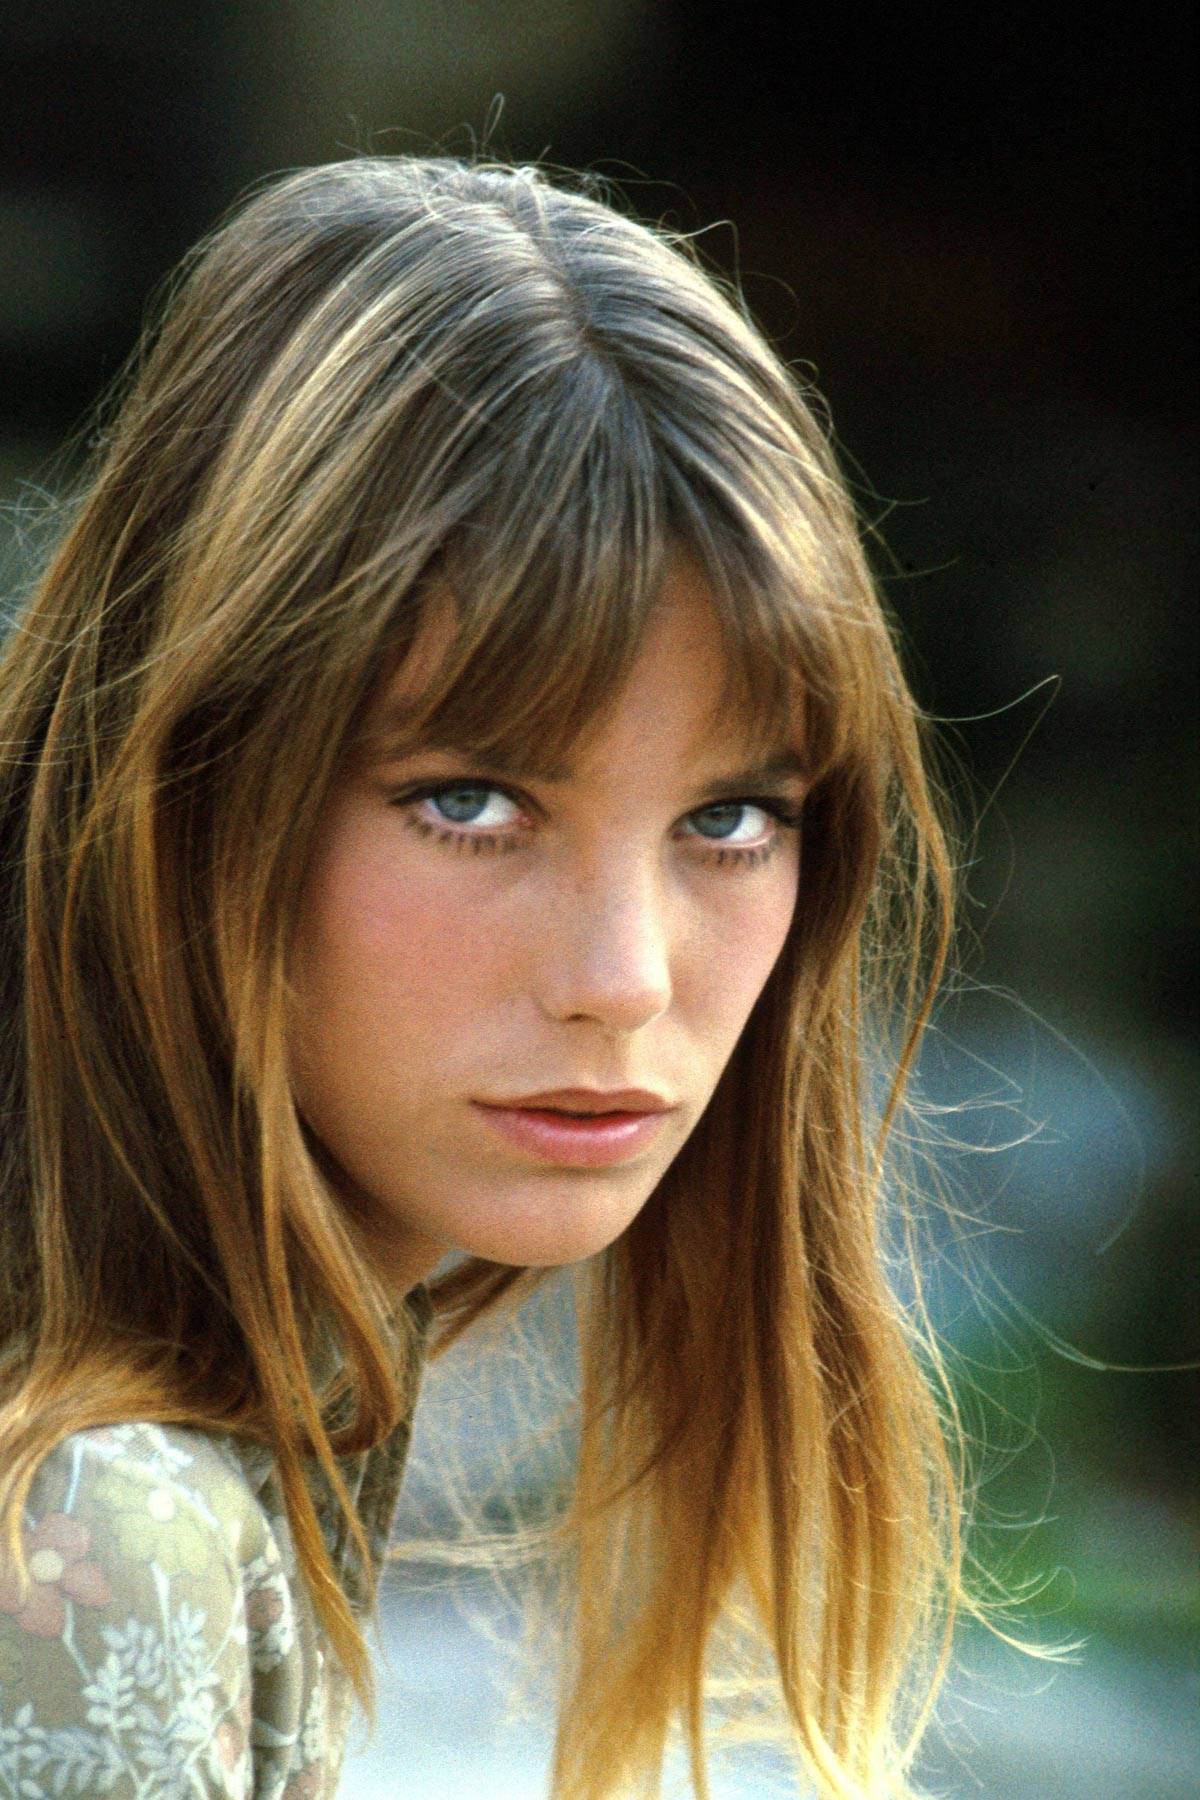 a-guide-to-cool-jane-birkin-photo-folkr-18